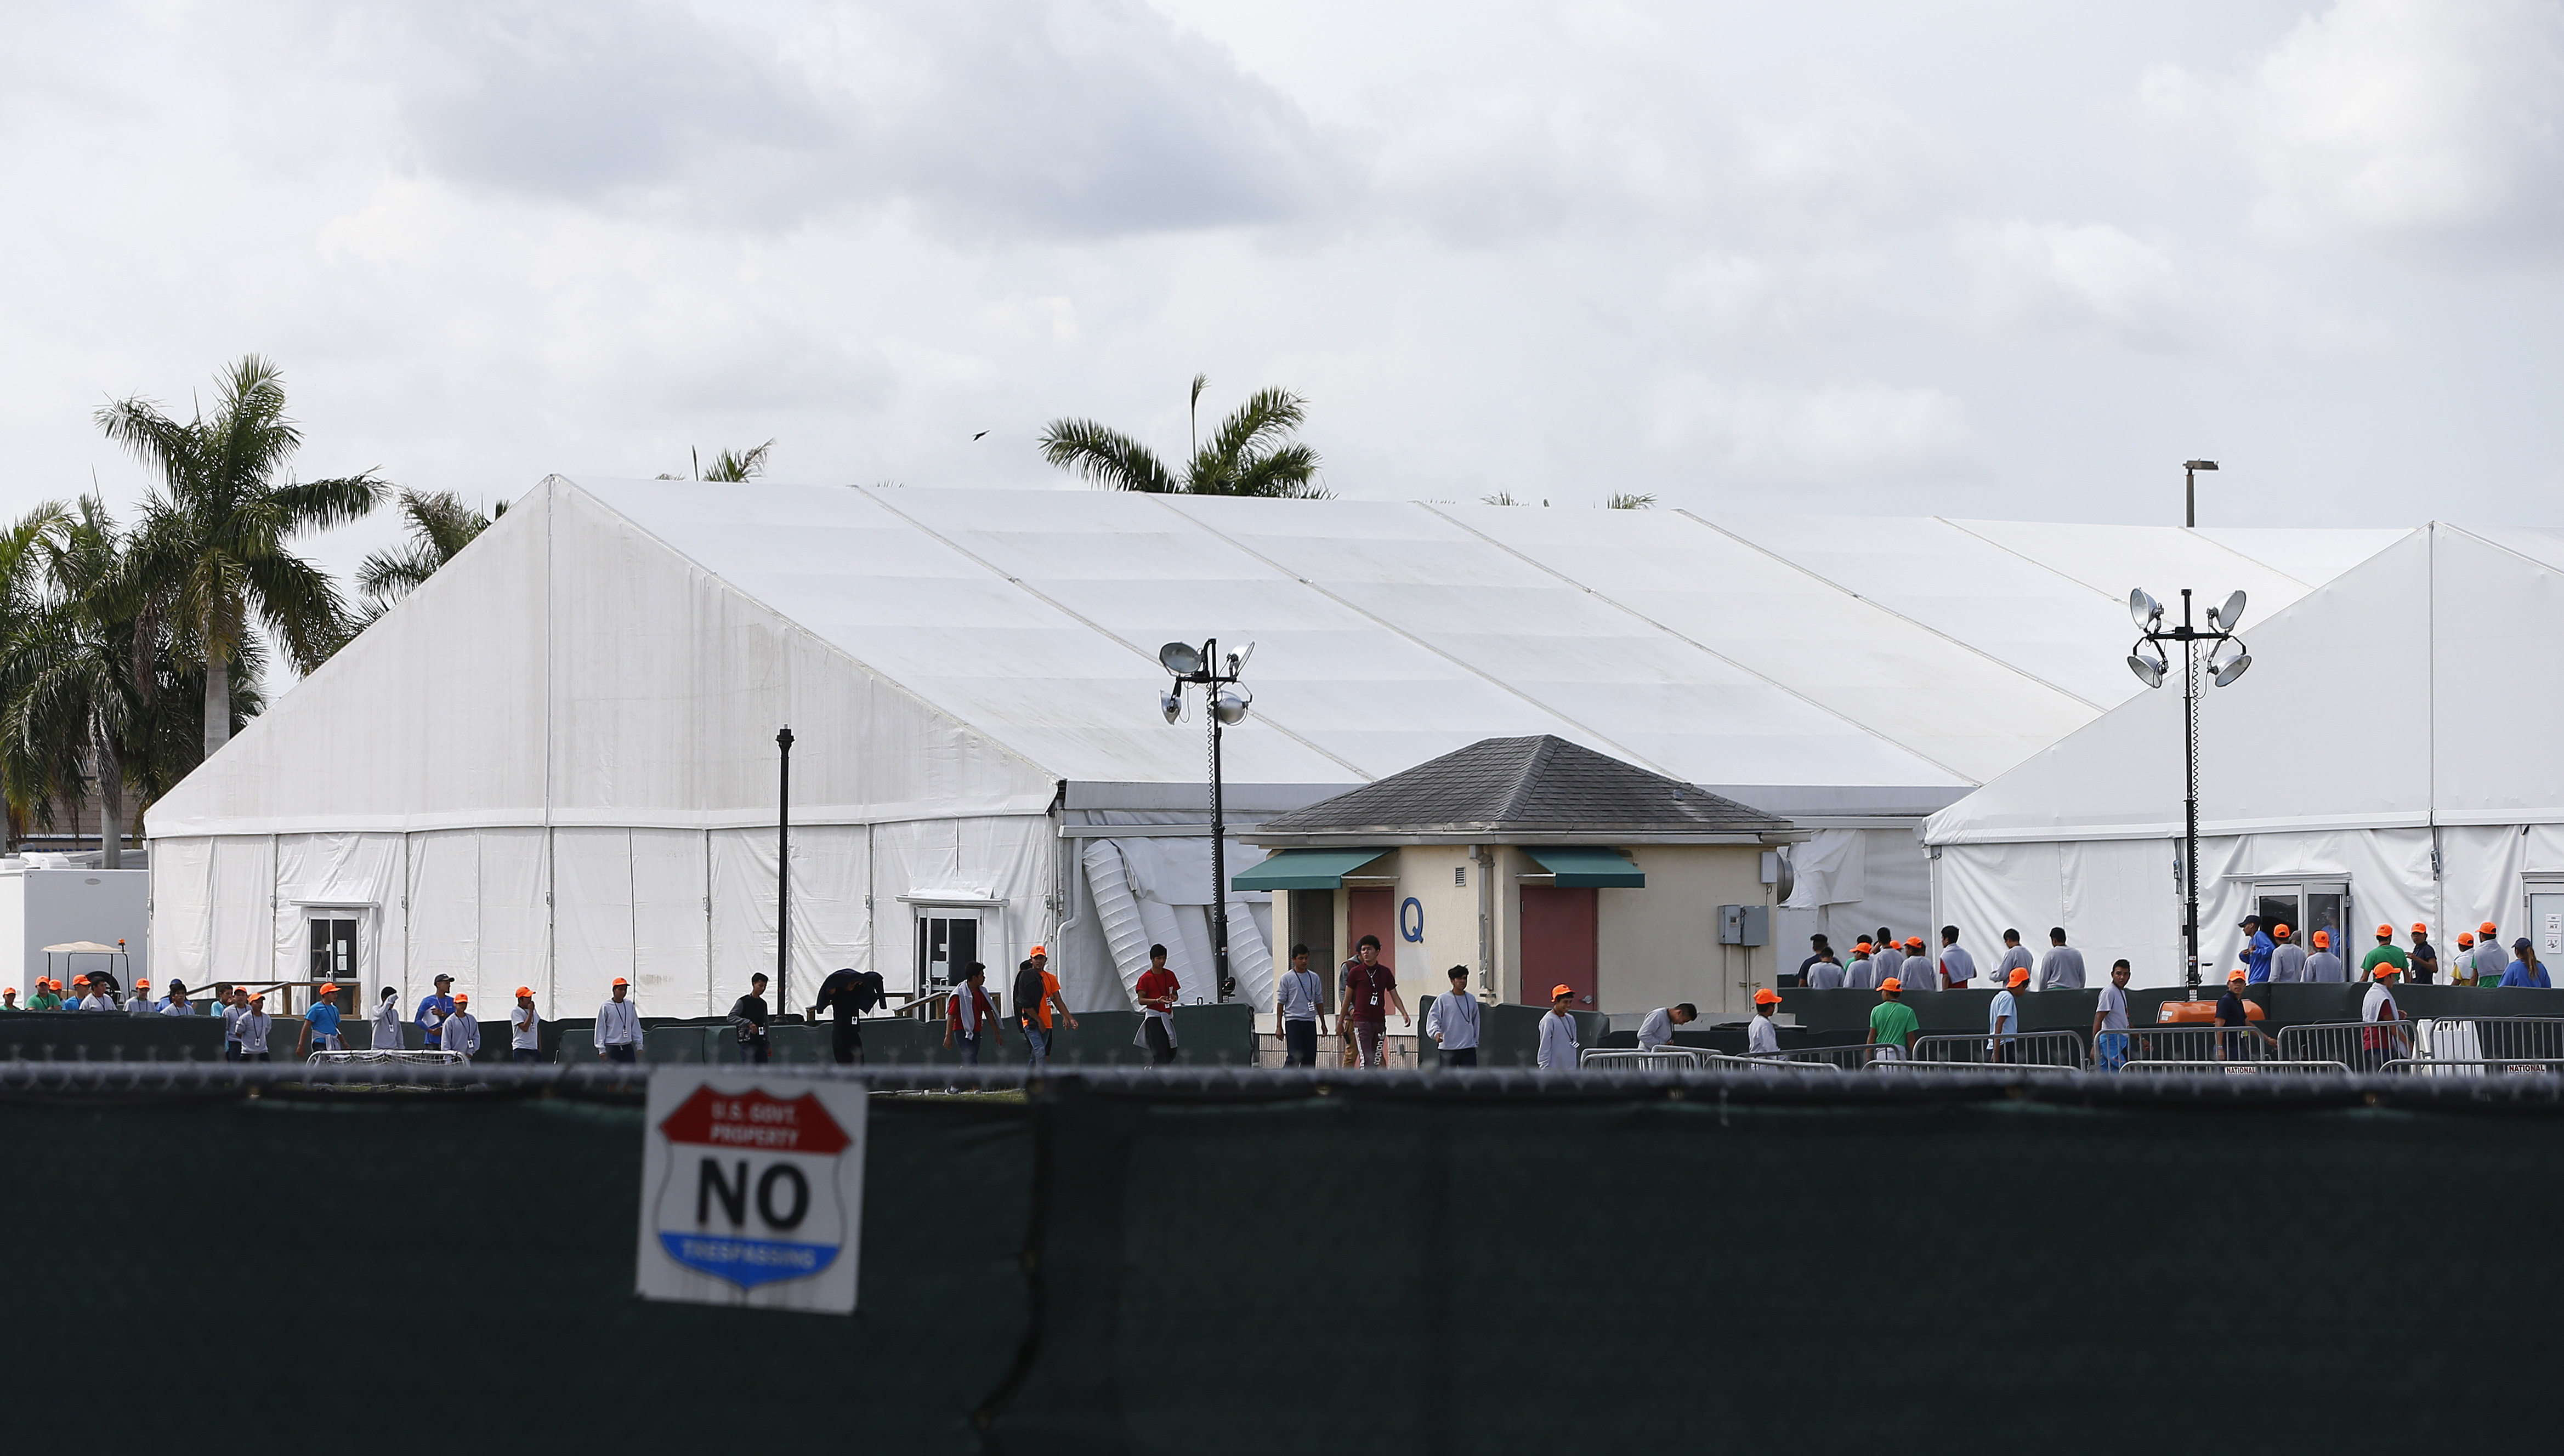 A detention center in Homestead, Florida on June 27, 2019. (Rhona Wise/AFP/Getty Images)